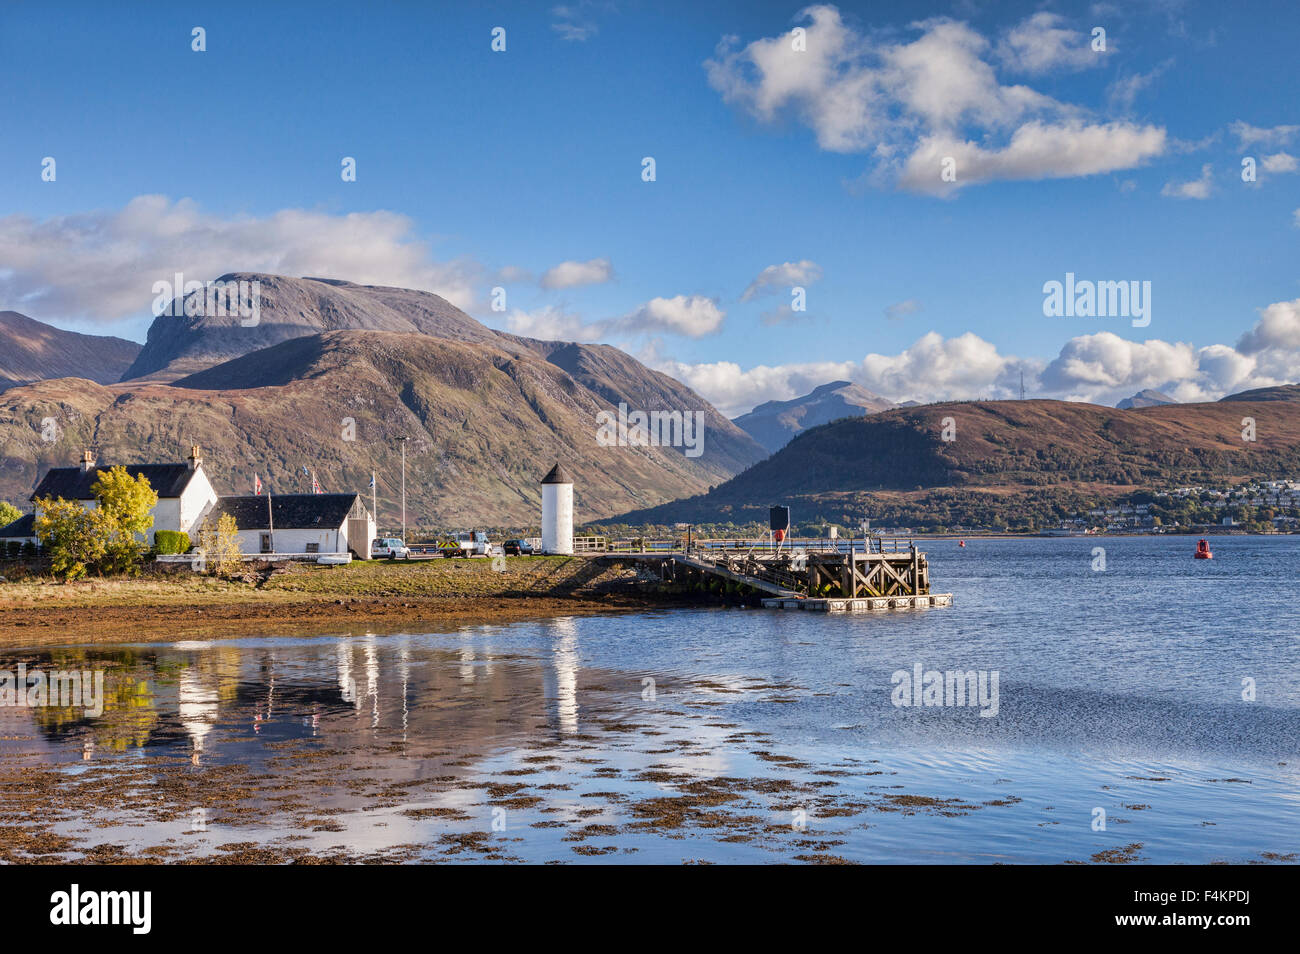 Corpach and Ben Nevis, Fort William, Highland, Scotland, UK - Stock Image